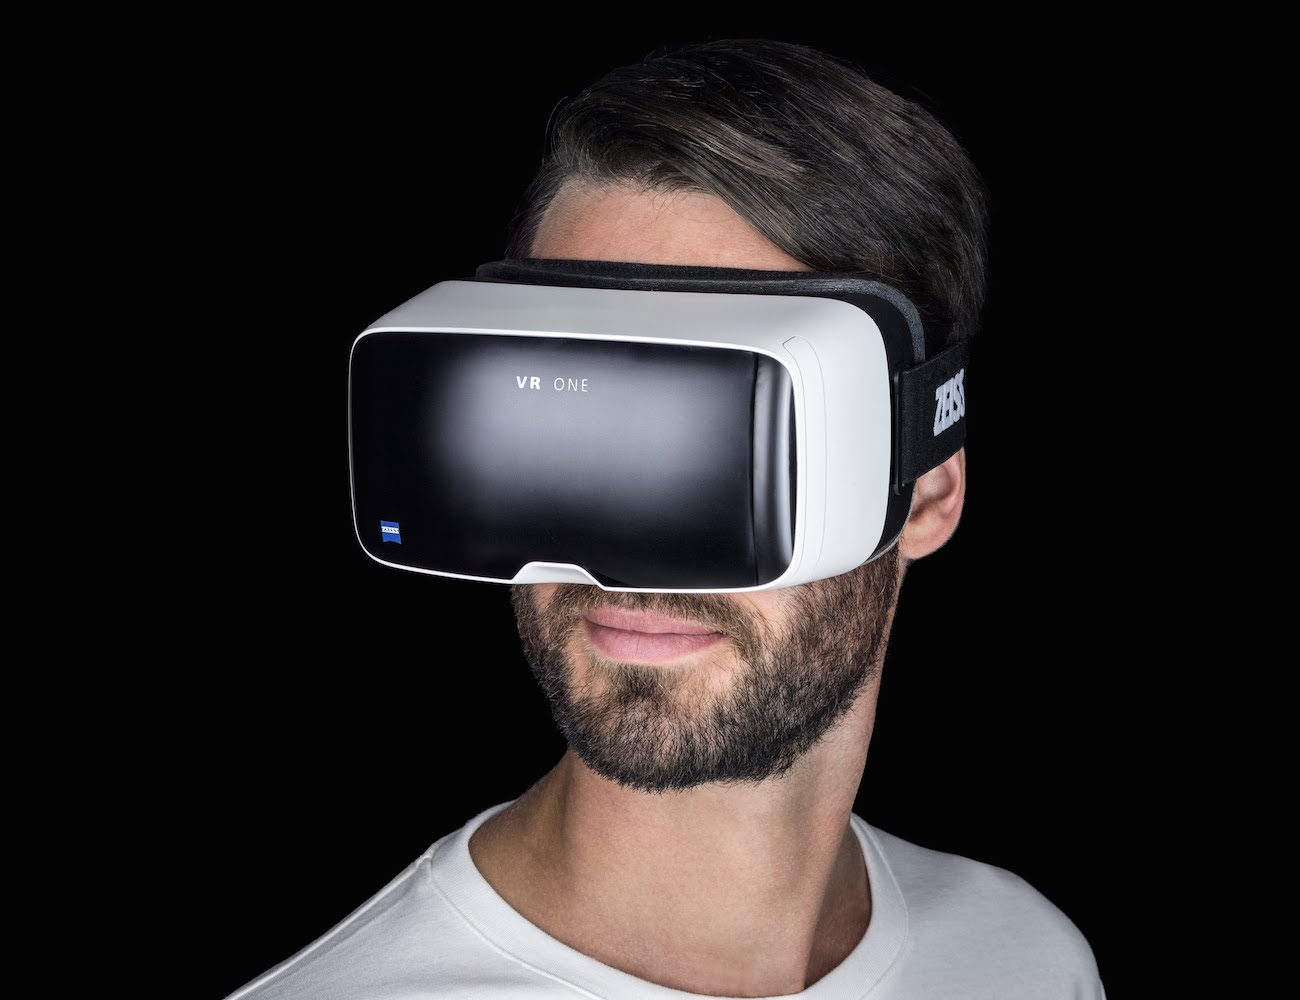 Zeiss+VR+ONE+Smartphone+Compatible+Virtual+Reality+Headset